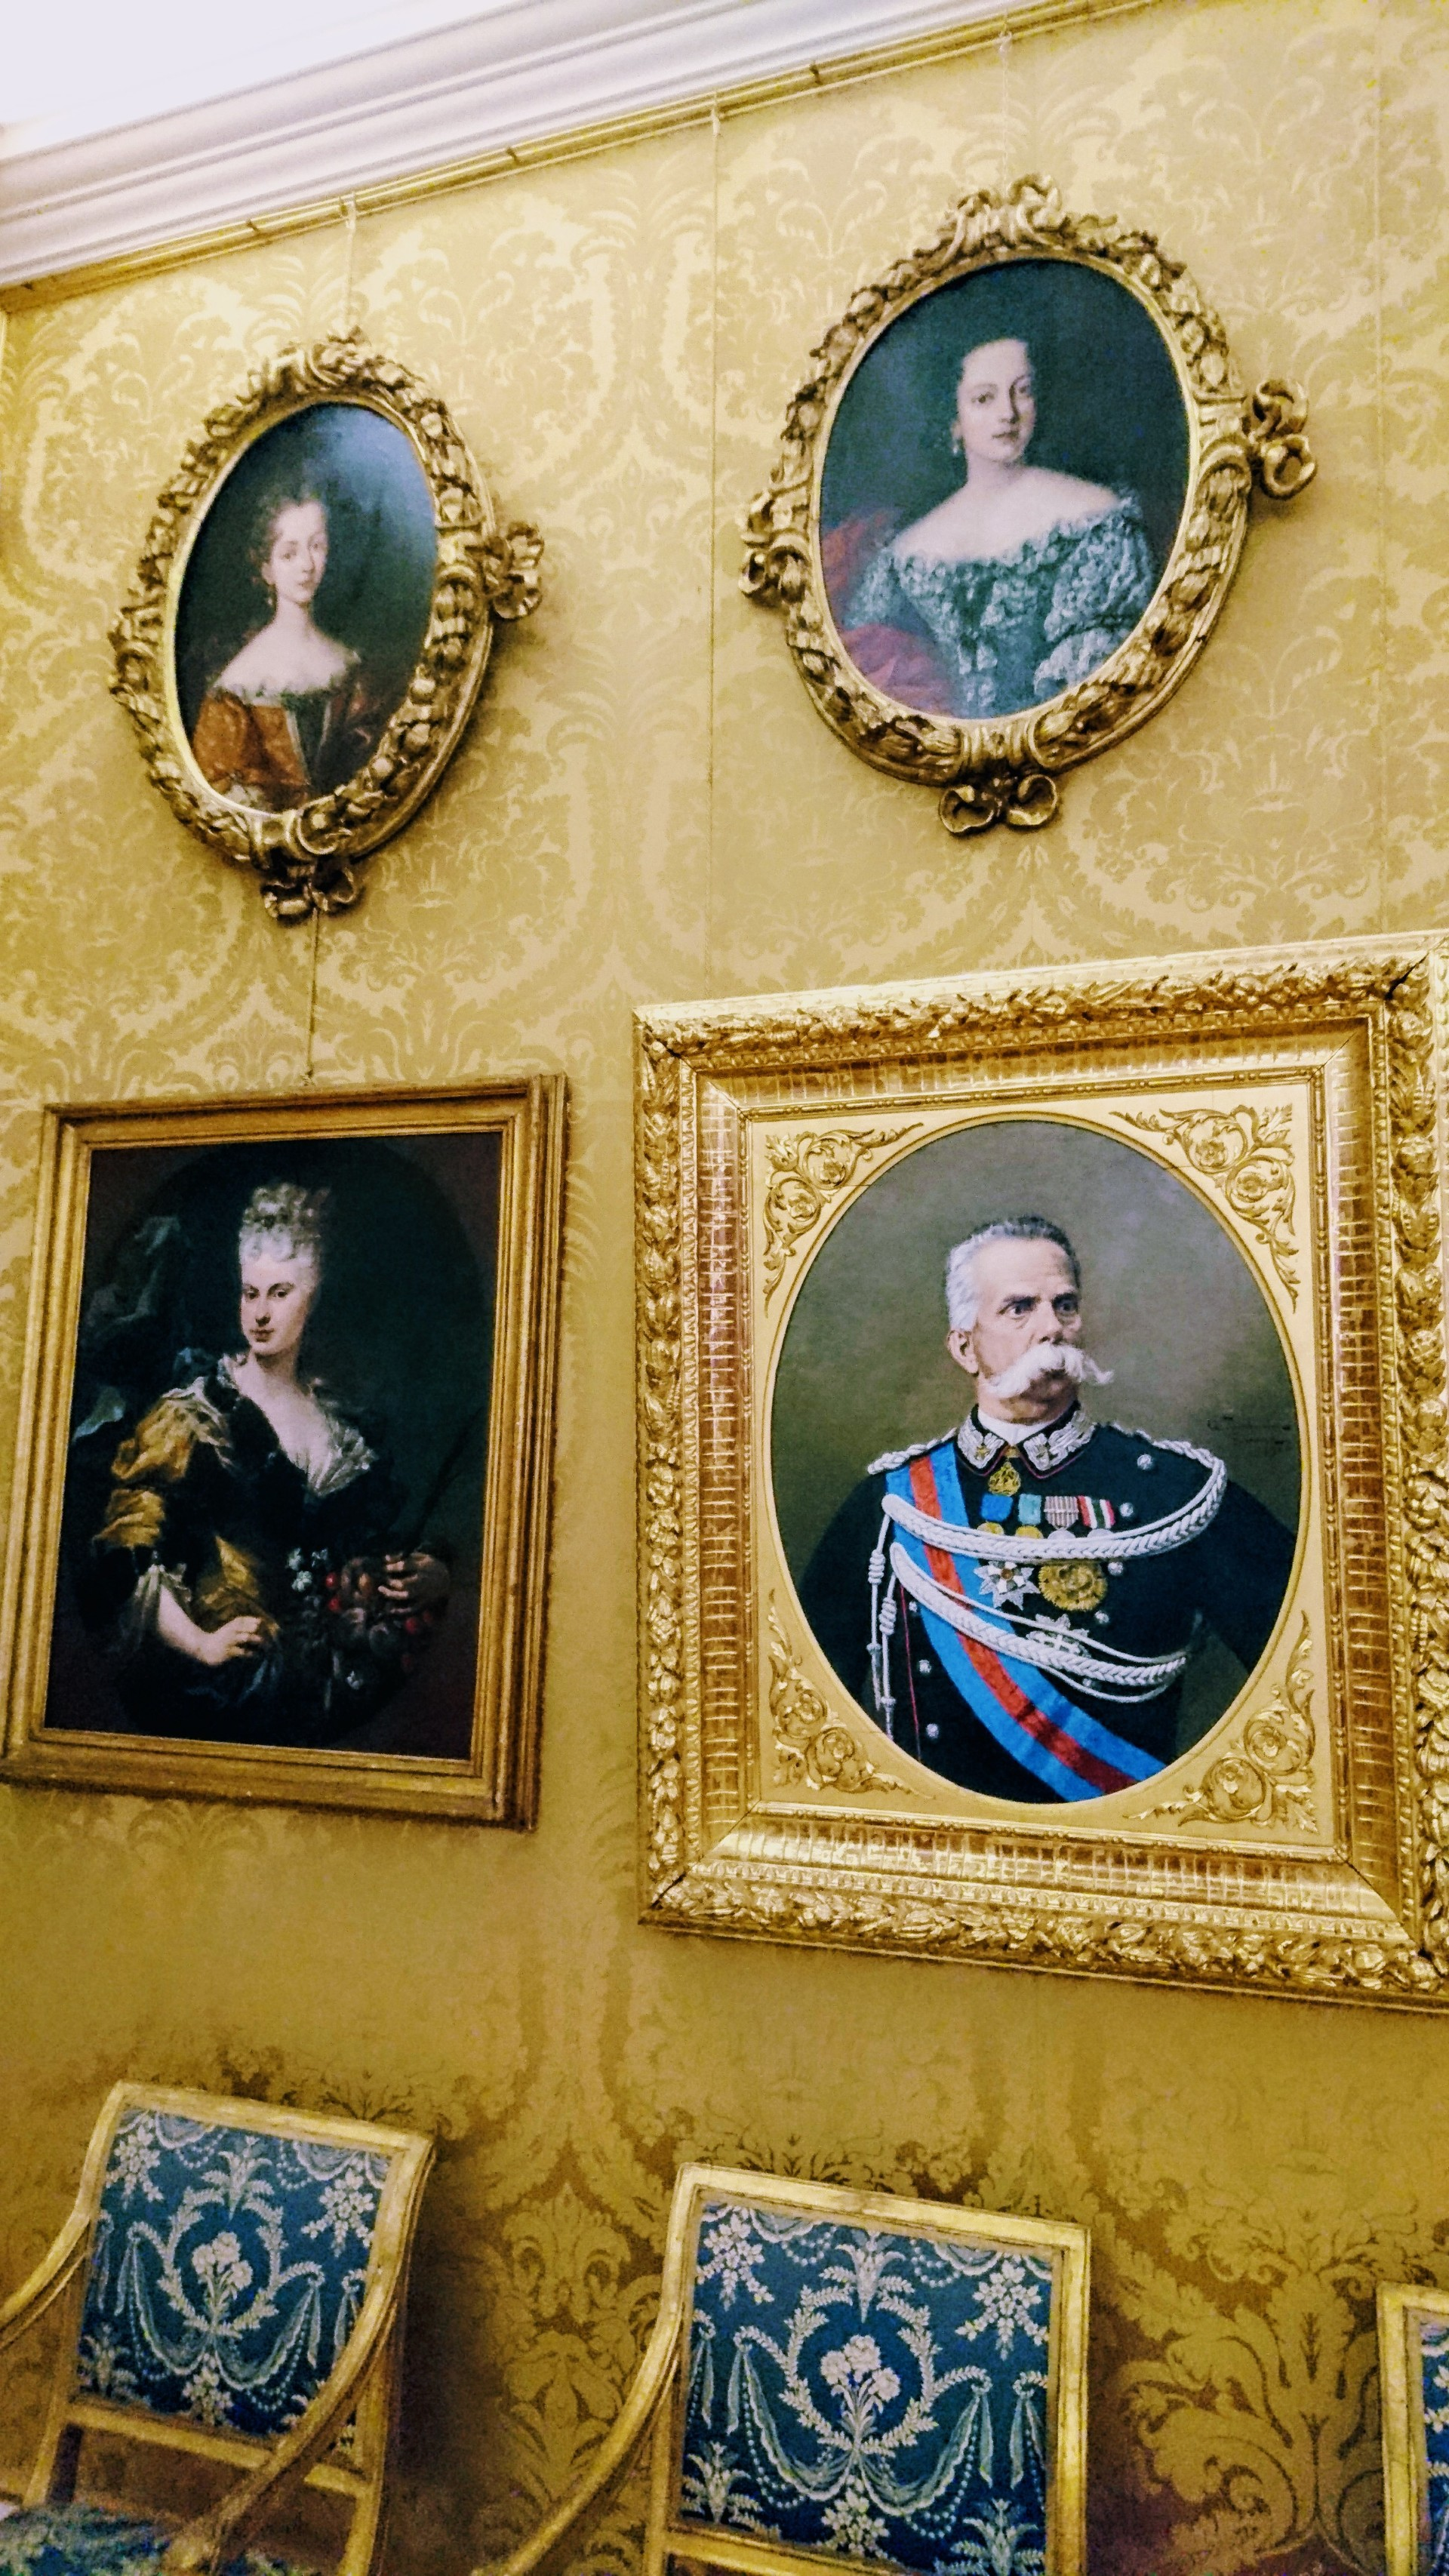 museo-di-palazzo-reale-035bf2d802af2a9eb